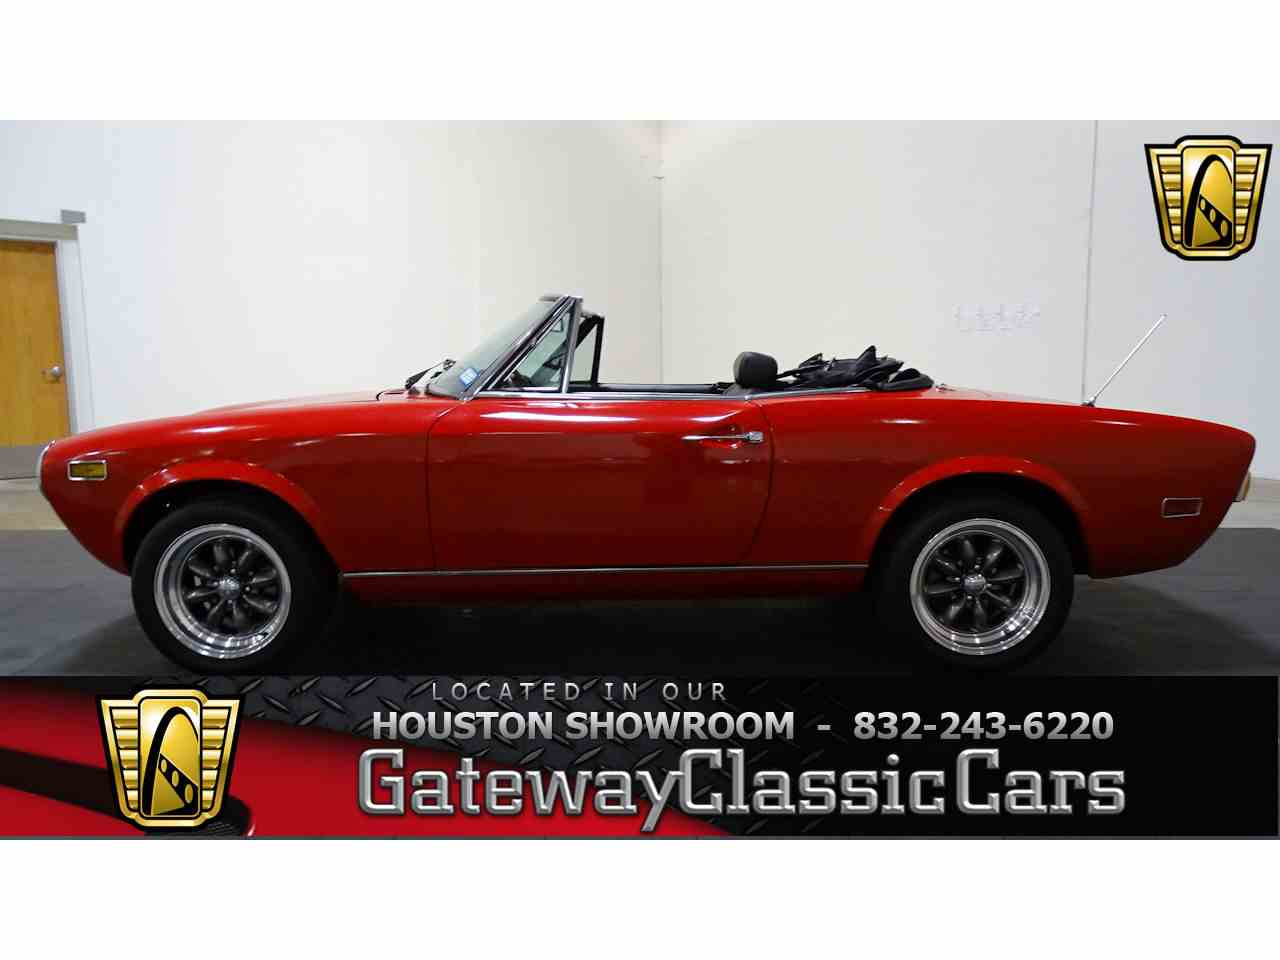 Classic Cars For Sale Houston Area: 1978 Fiat Spider For Sale